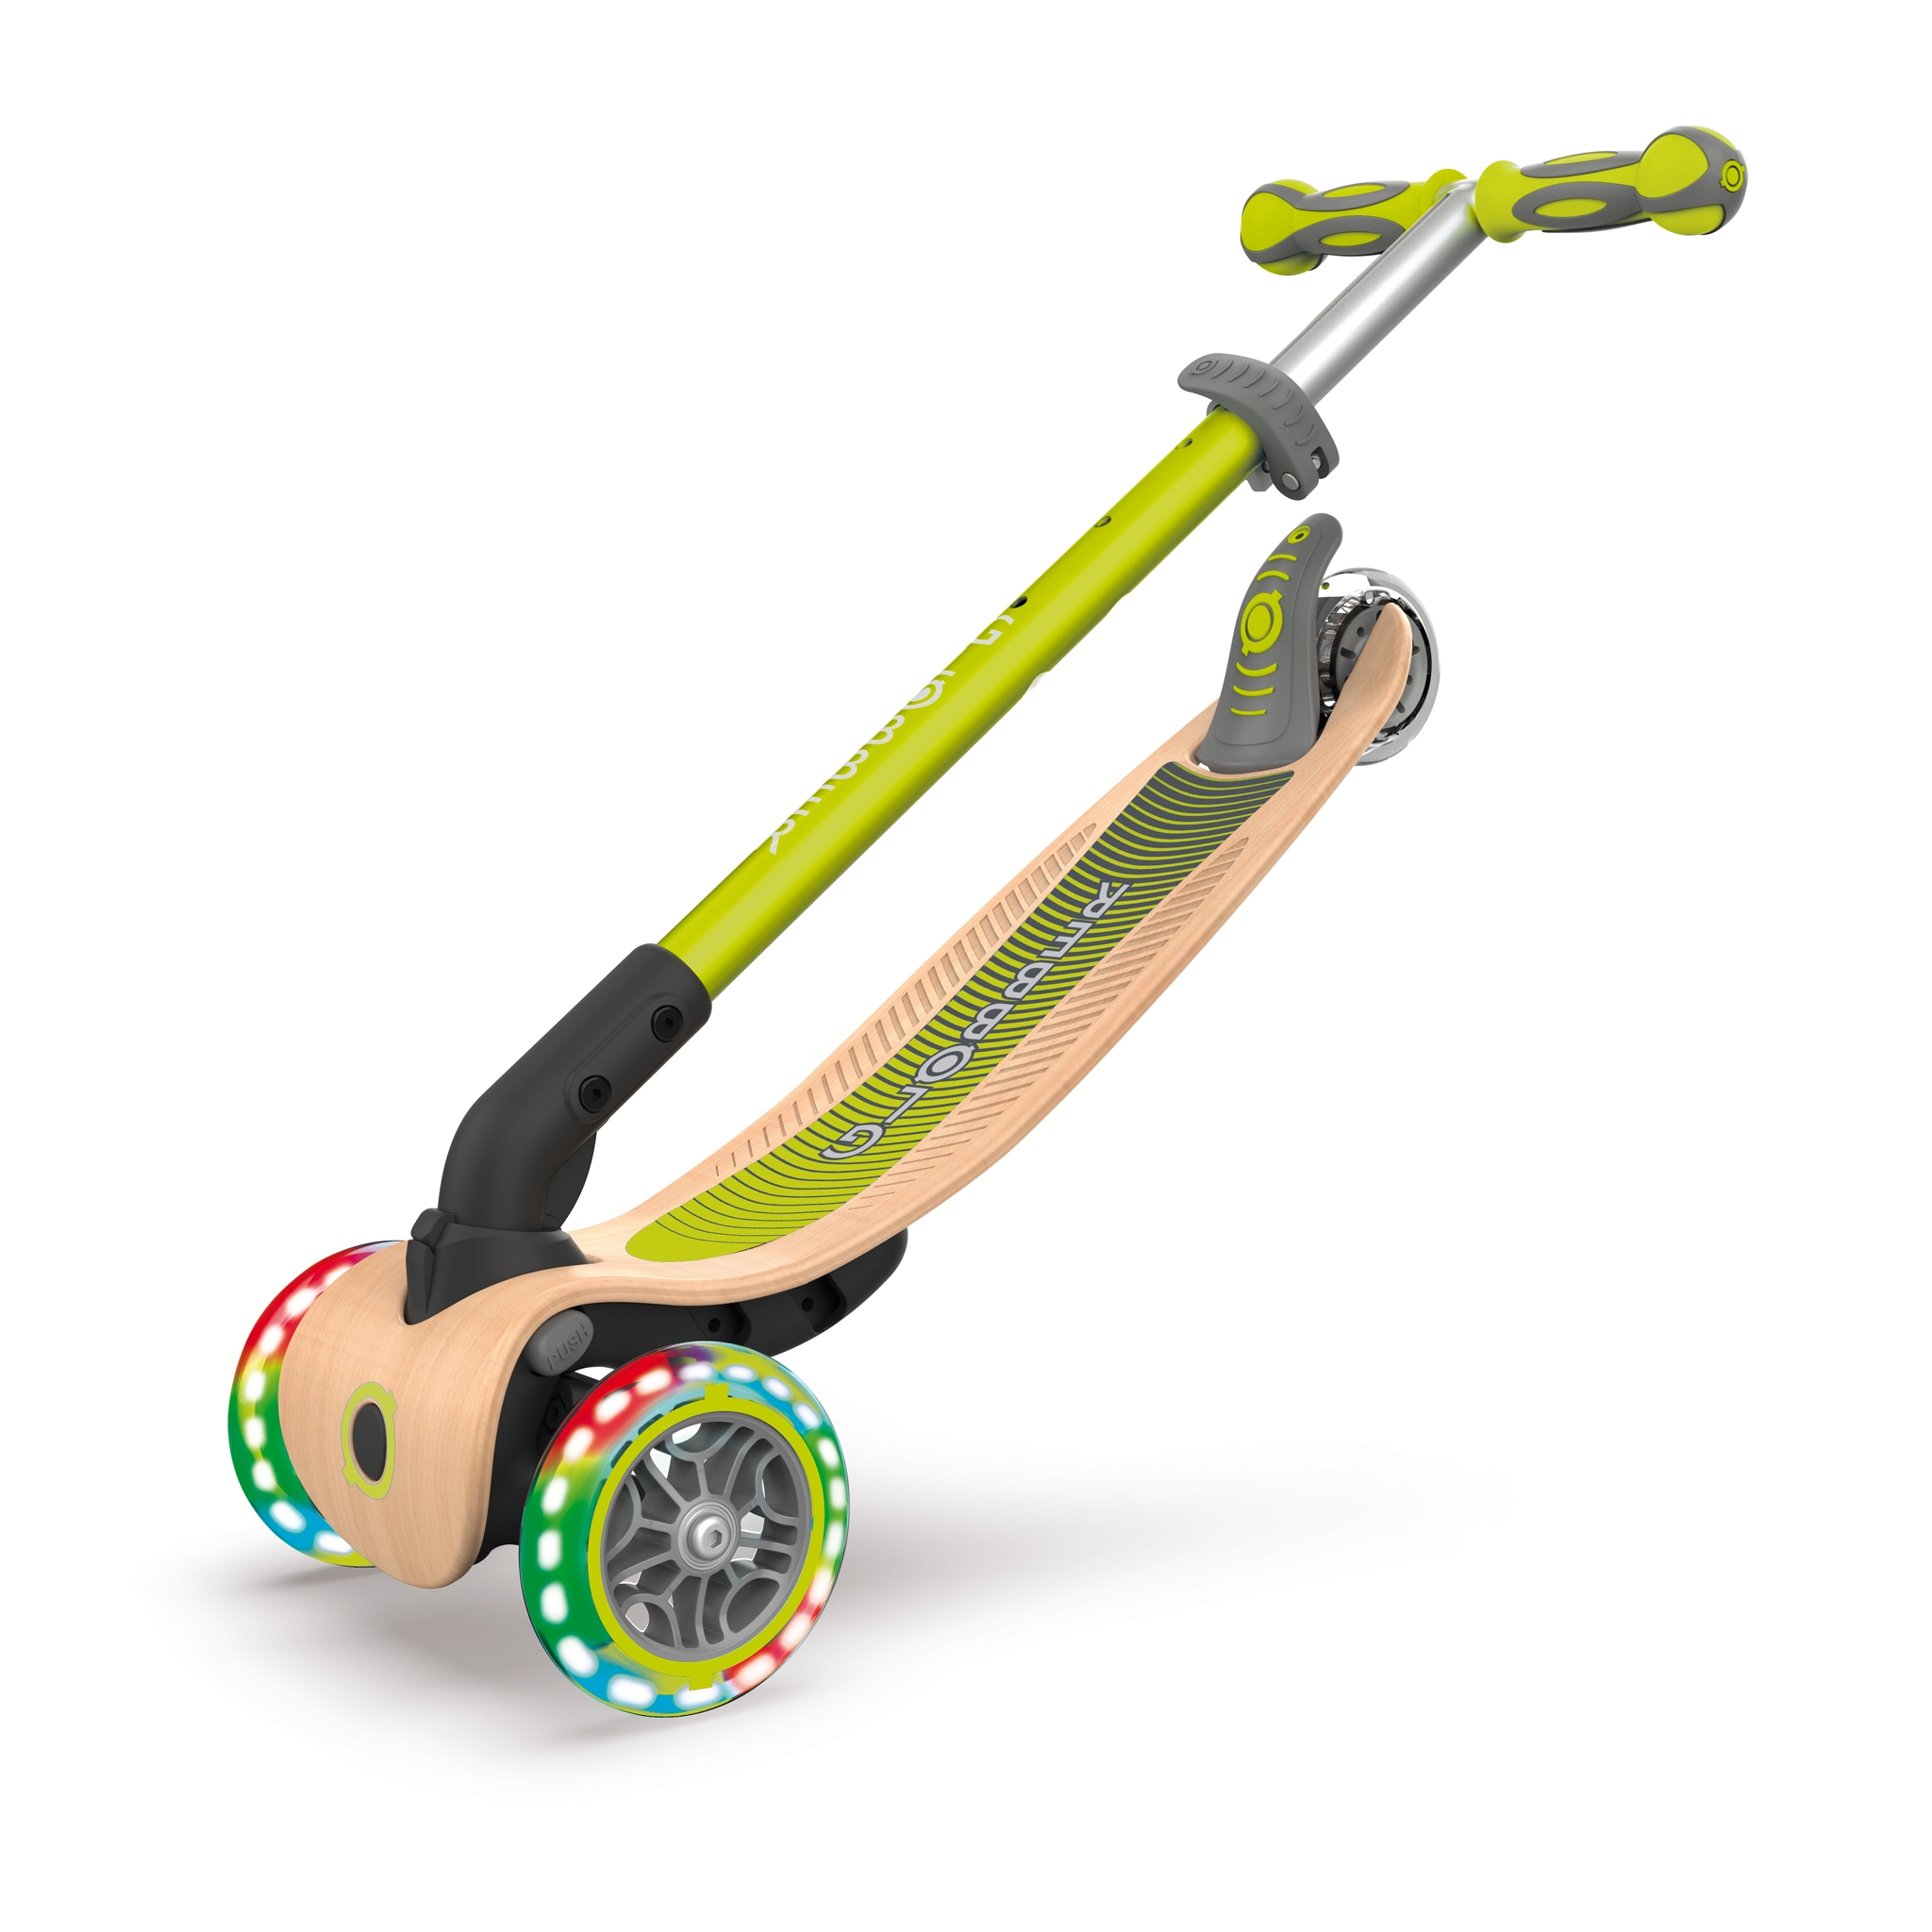 PRIMO-FOLDABLE-WOOD-LIGHTS-3-wheel-foldable-light-up-scooter-with-7-ply-wooden-scooter-deck-trolley-mode-compatible_lime-green